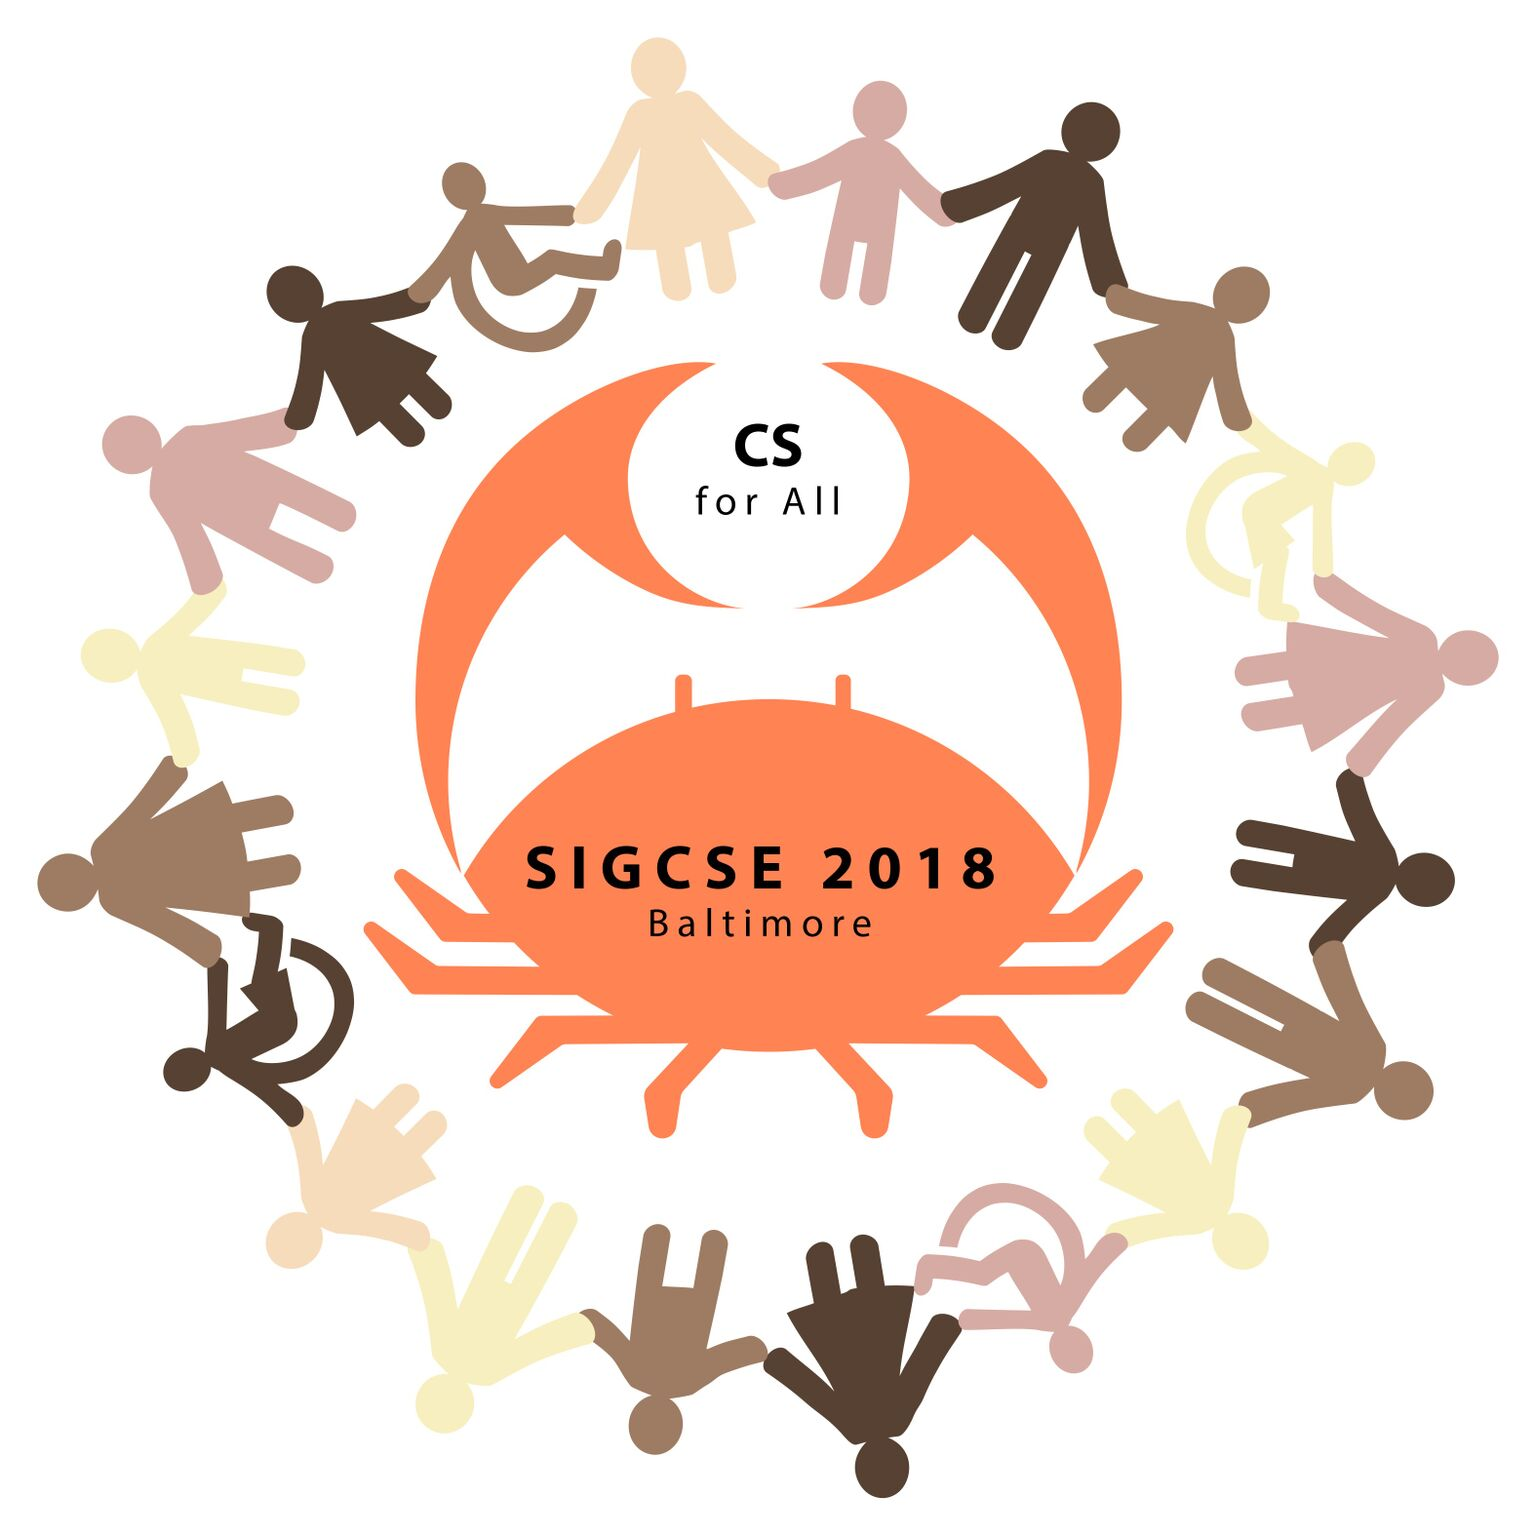 The SIGCSE 2018 logo showing  wide variety of humans gathered in a circle holding hands with a crab at their center.